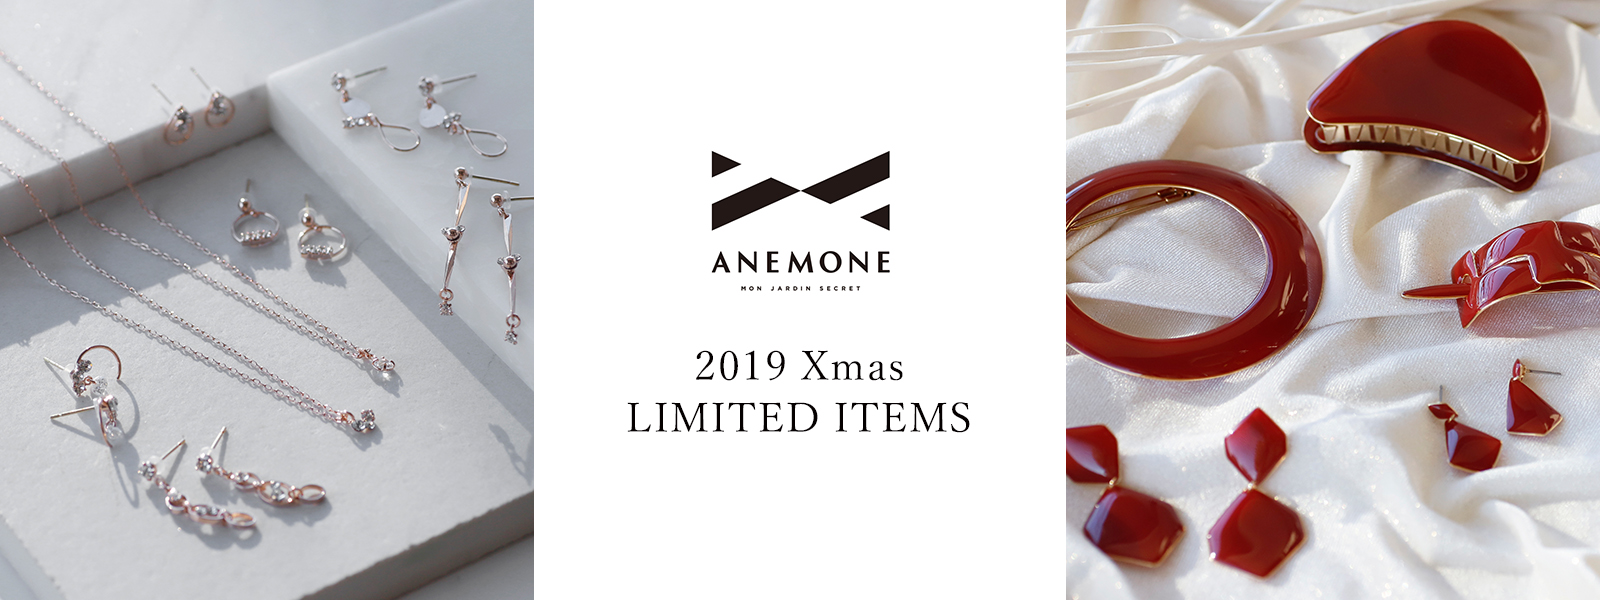 ANEMONE Xmas LIMITED ITEMS